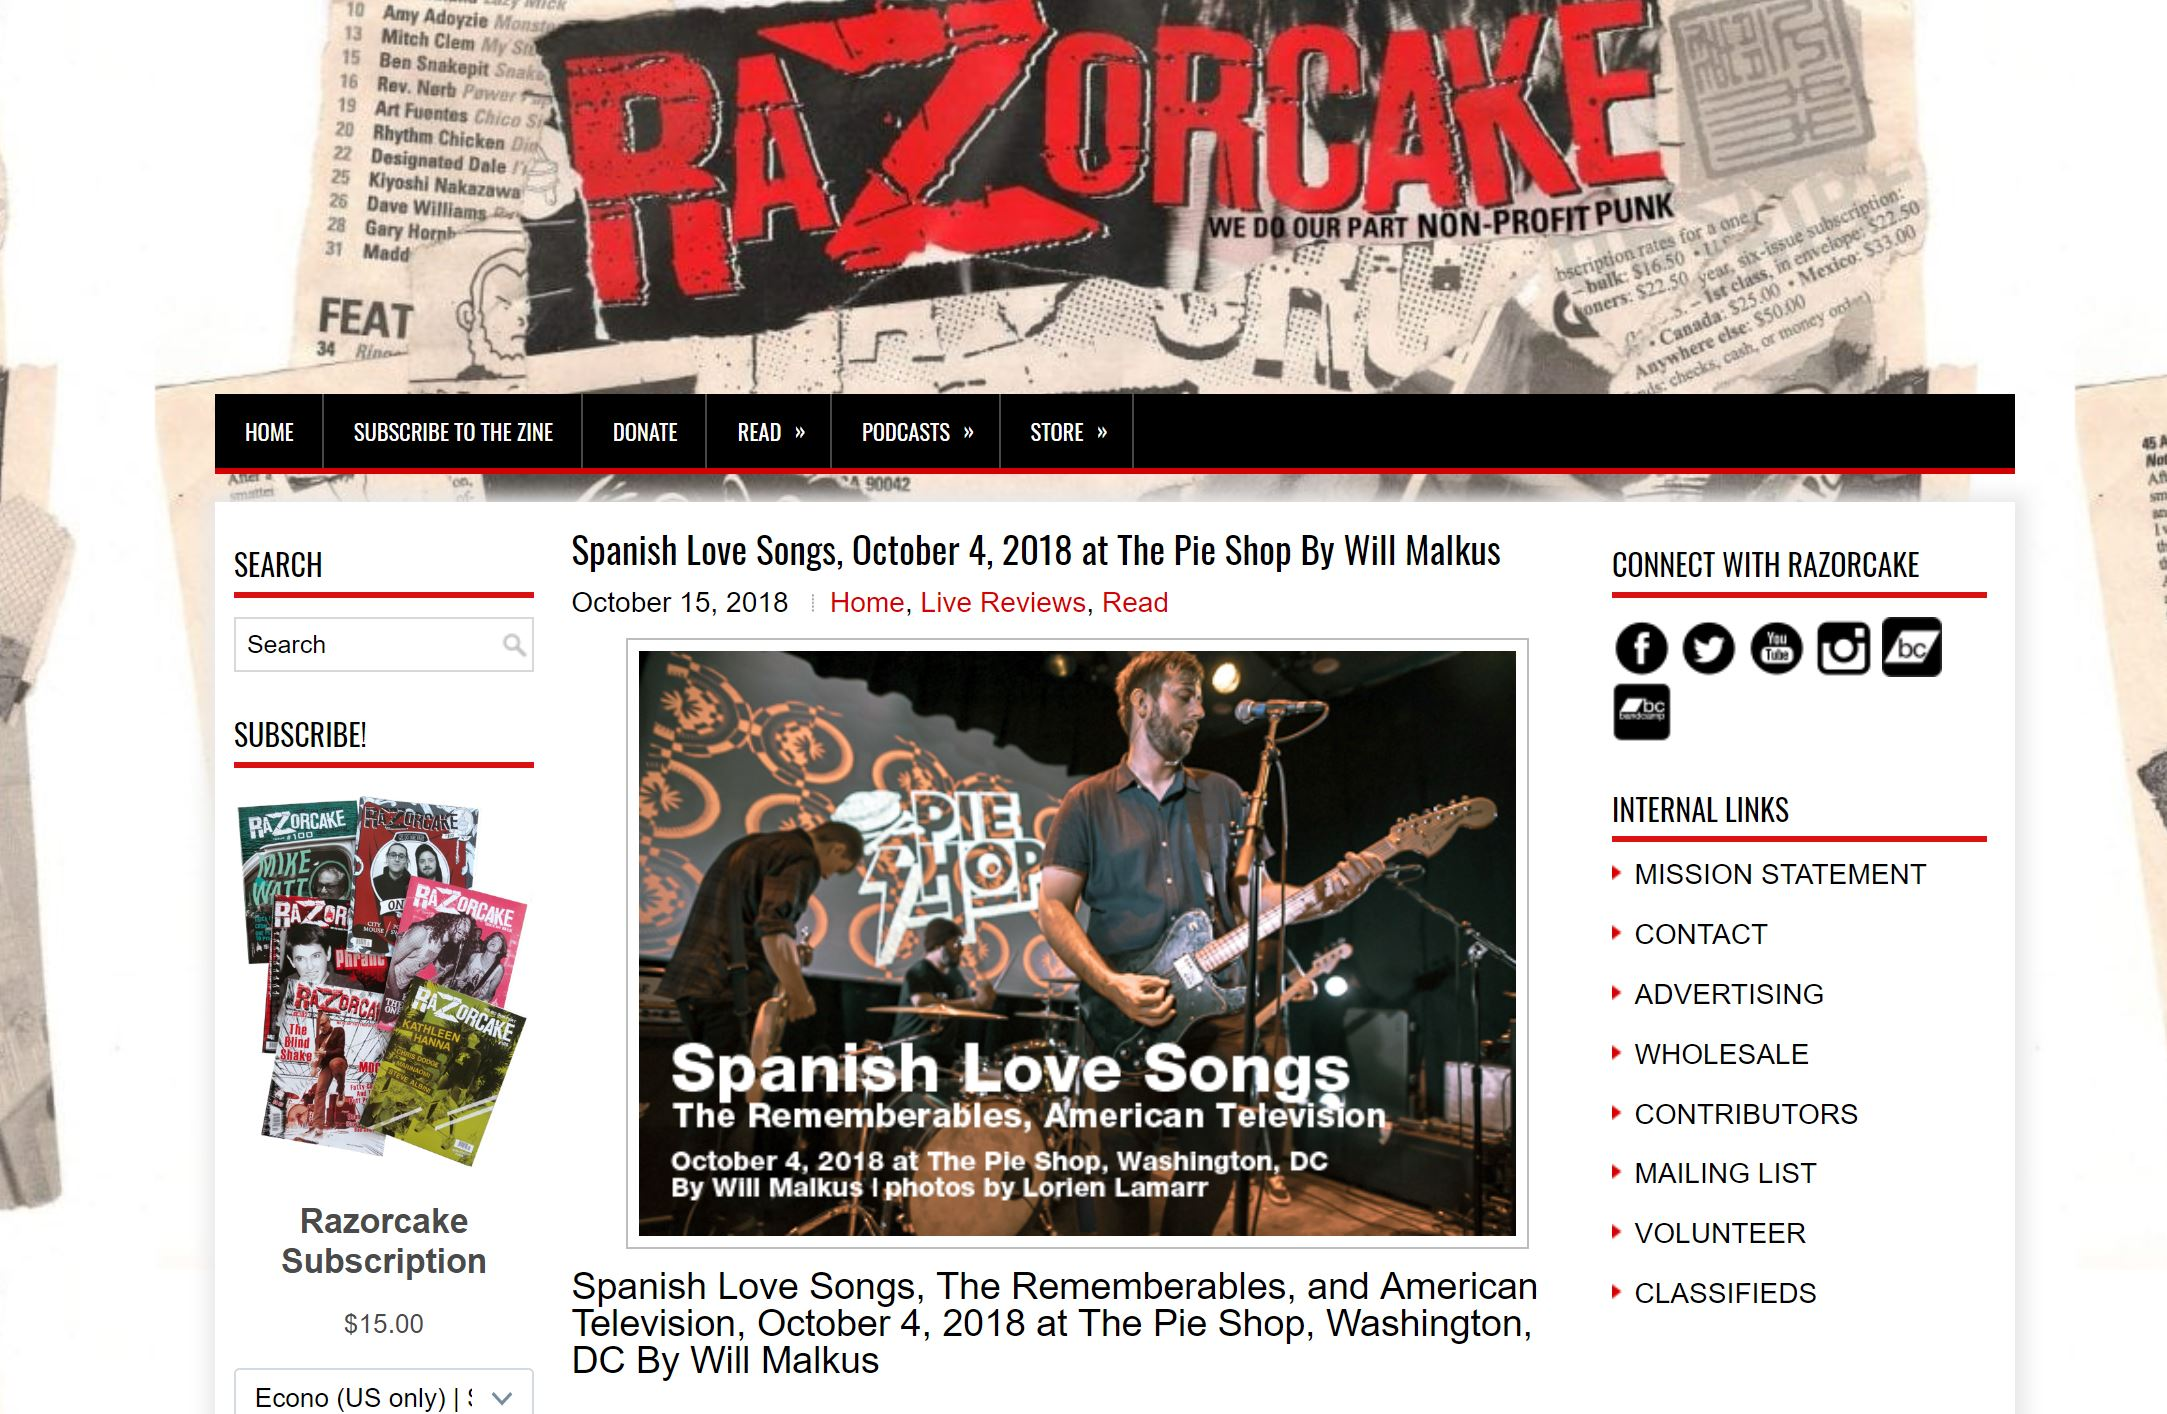 Spanish Love Song, The Rememberables, and American Television at The Pie Shop - Live Music Review for Razorcake, 2018